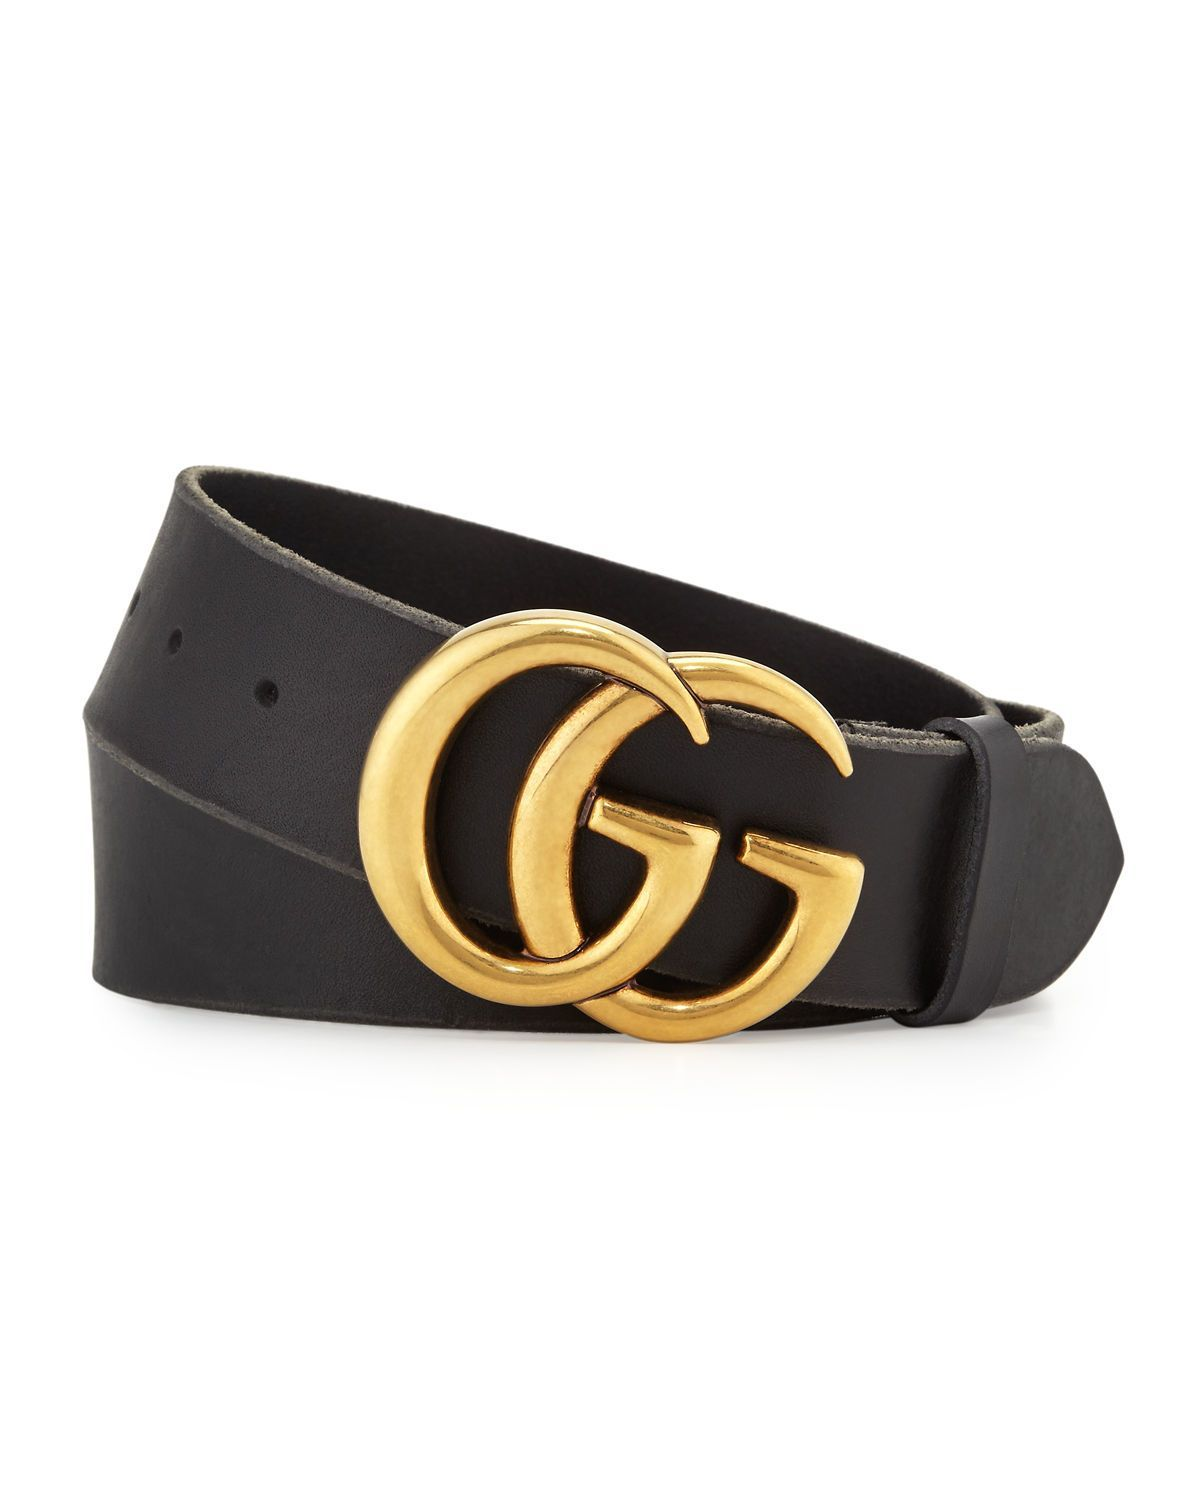 3711fee6d Smooth leather Gucci belt with double-G buckle. Brass hardware. 1.5